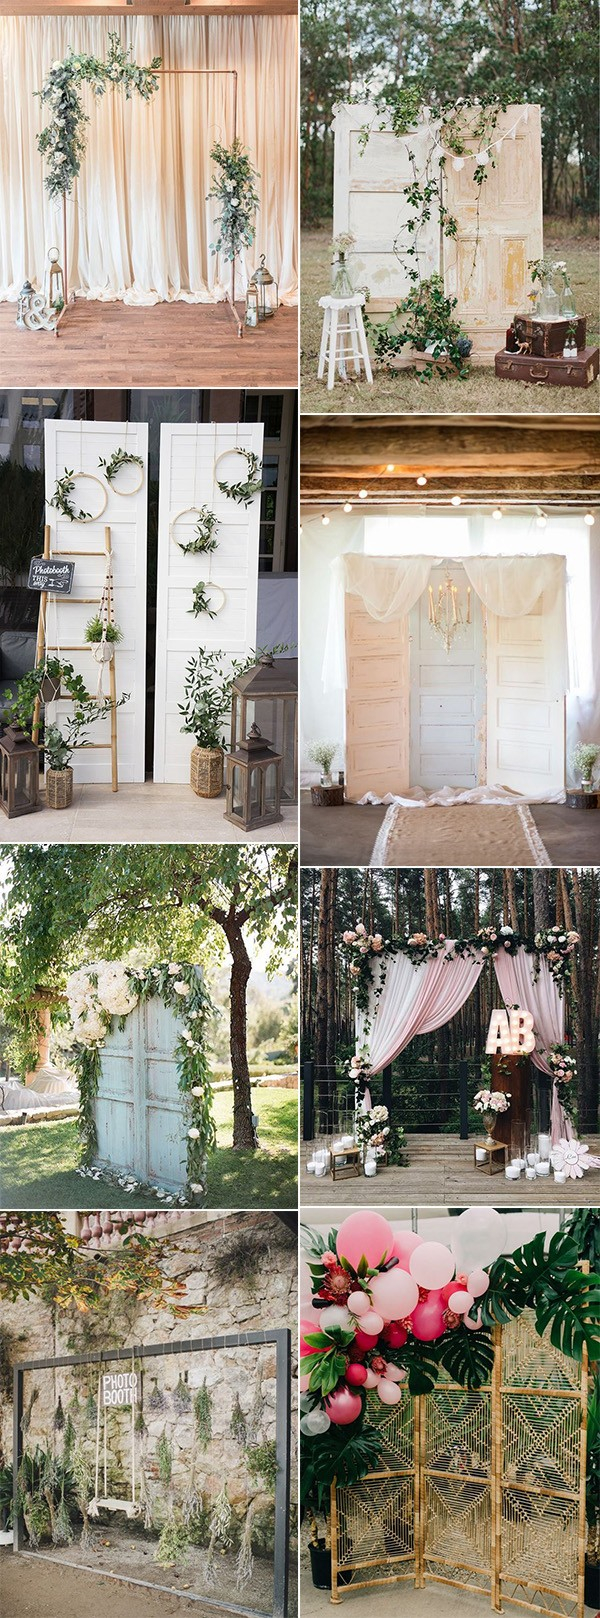 Photobooth Wedding Ideas 16 Amazing Wedding Photo Booth Backdrops For 2019 Trends